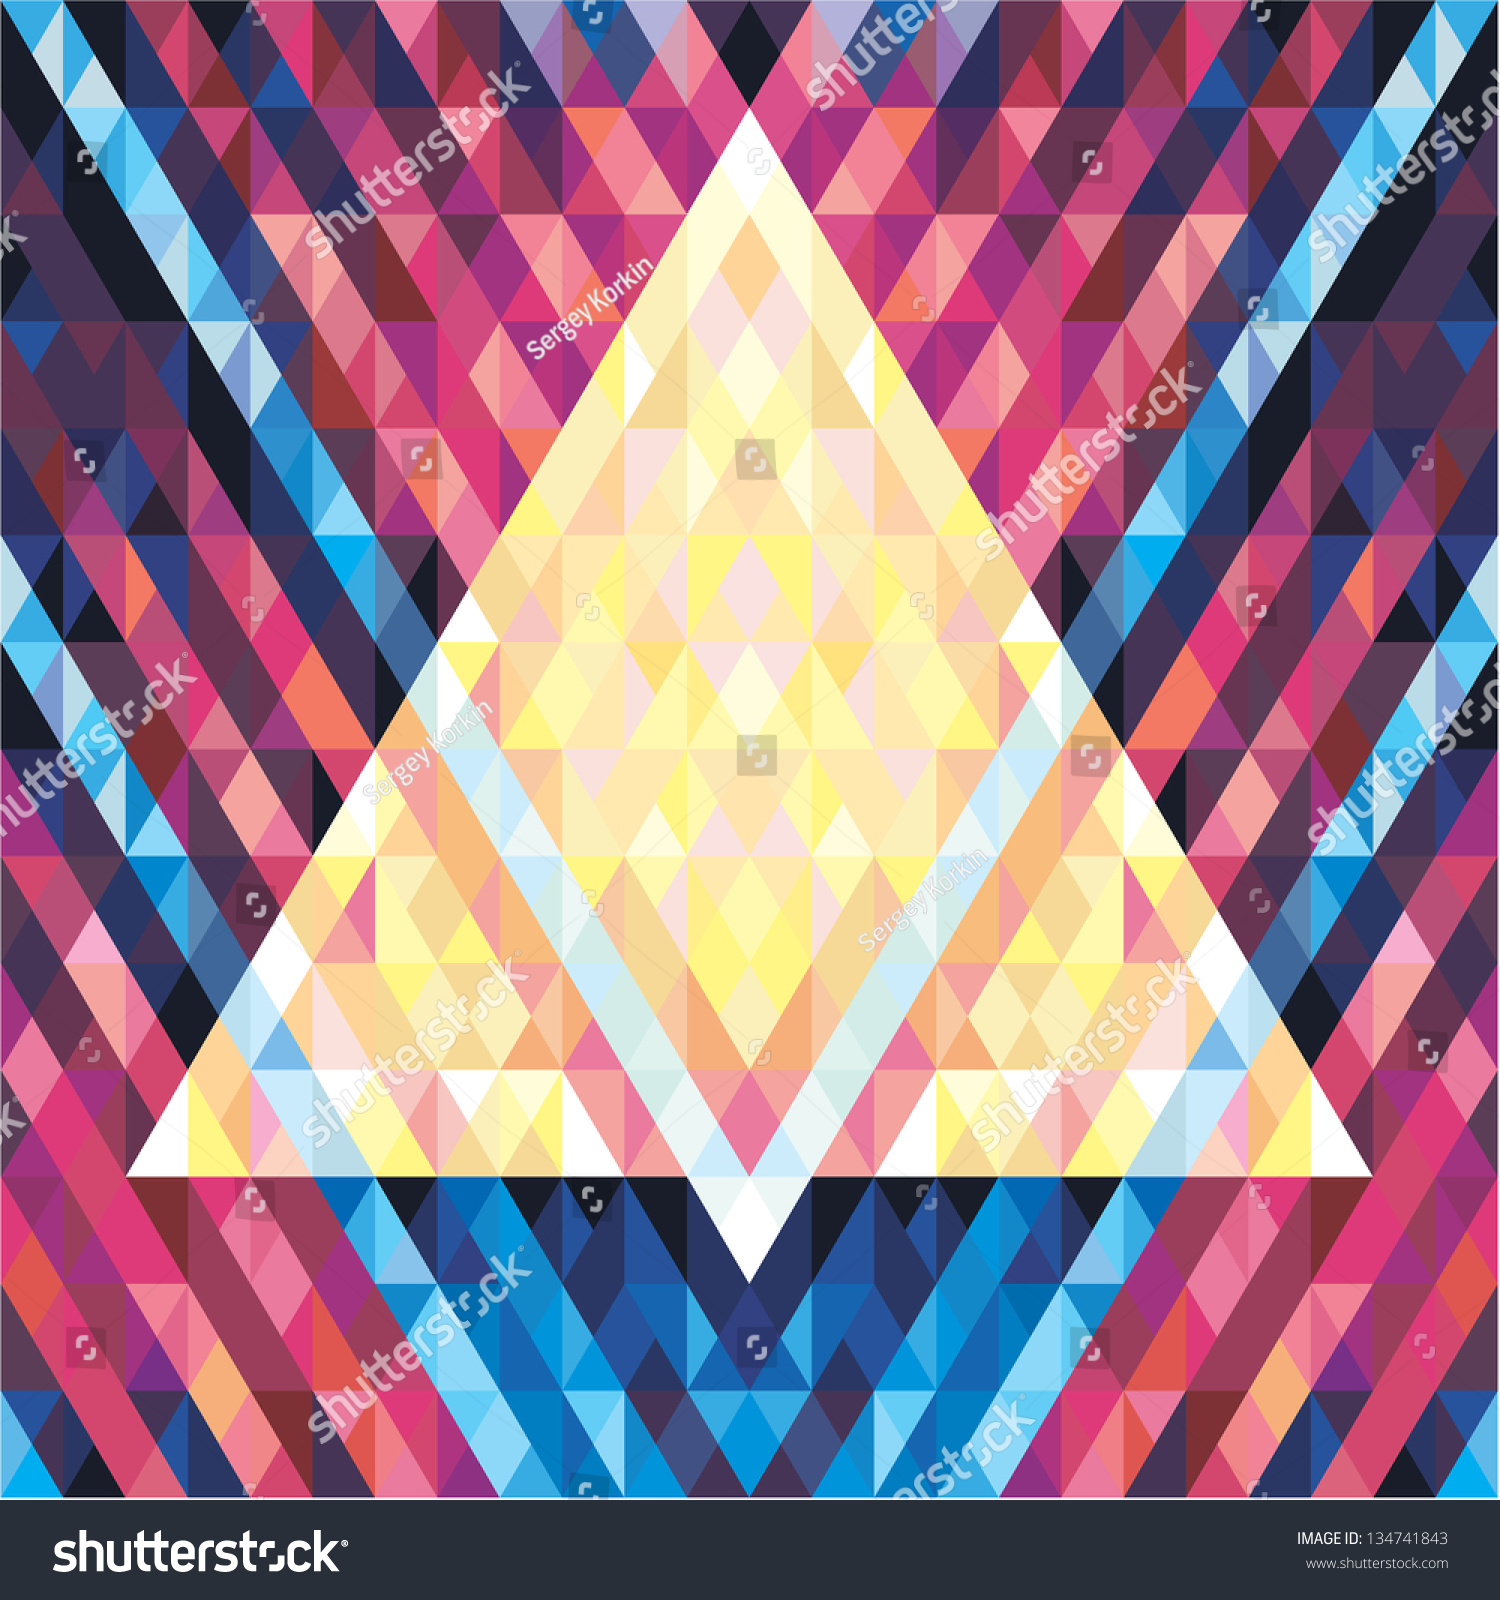 geometric background vector seamless pattern music stock vector geometric background vector seamless pattern music flyer poster 02